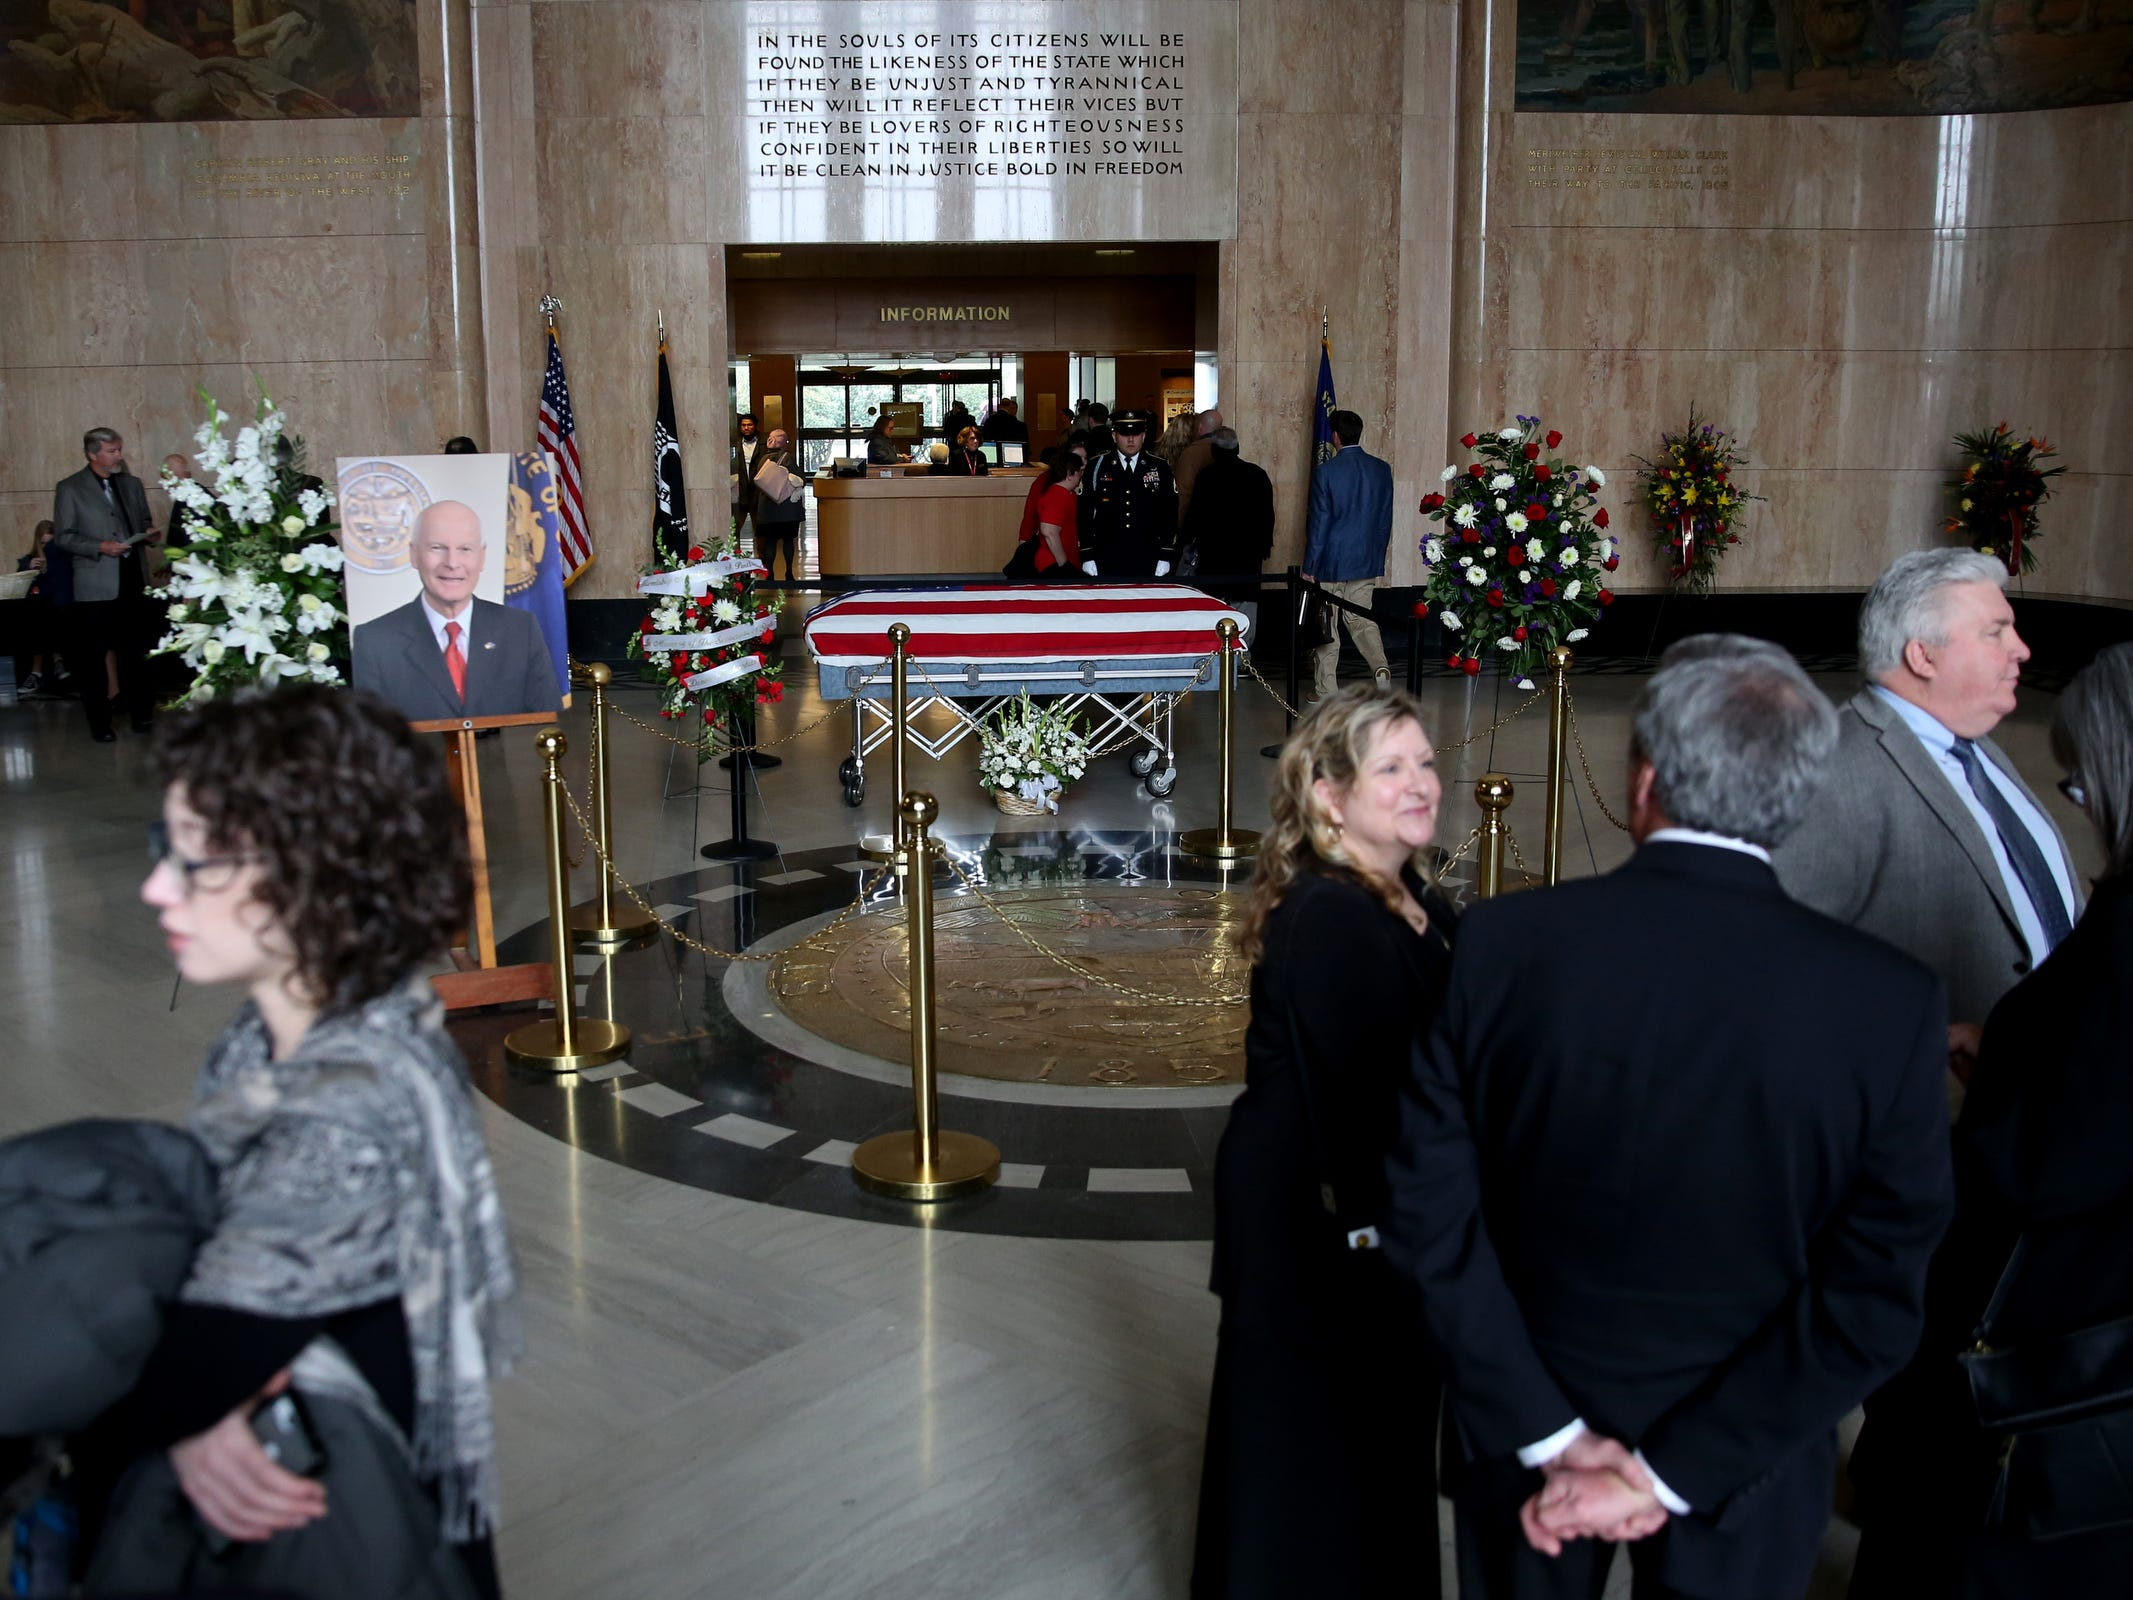 Secretary of State Dennis Richardson lies in state as friends and family gather in the rotunda at the Oregon State Capitol in Salem on Wednesday, March 6, 2019.